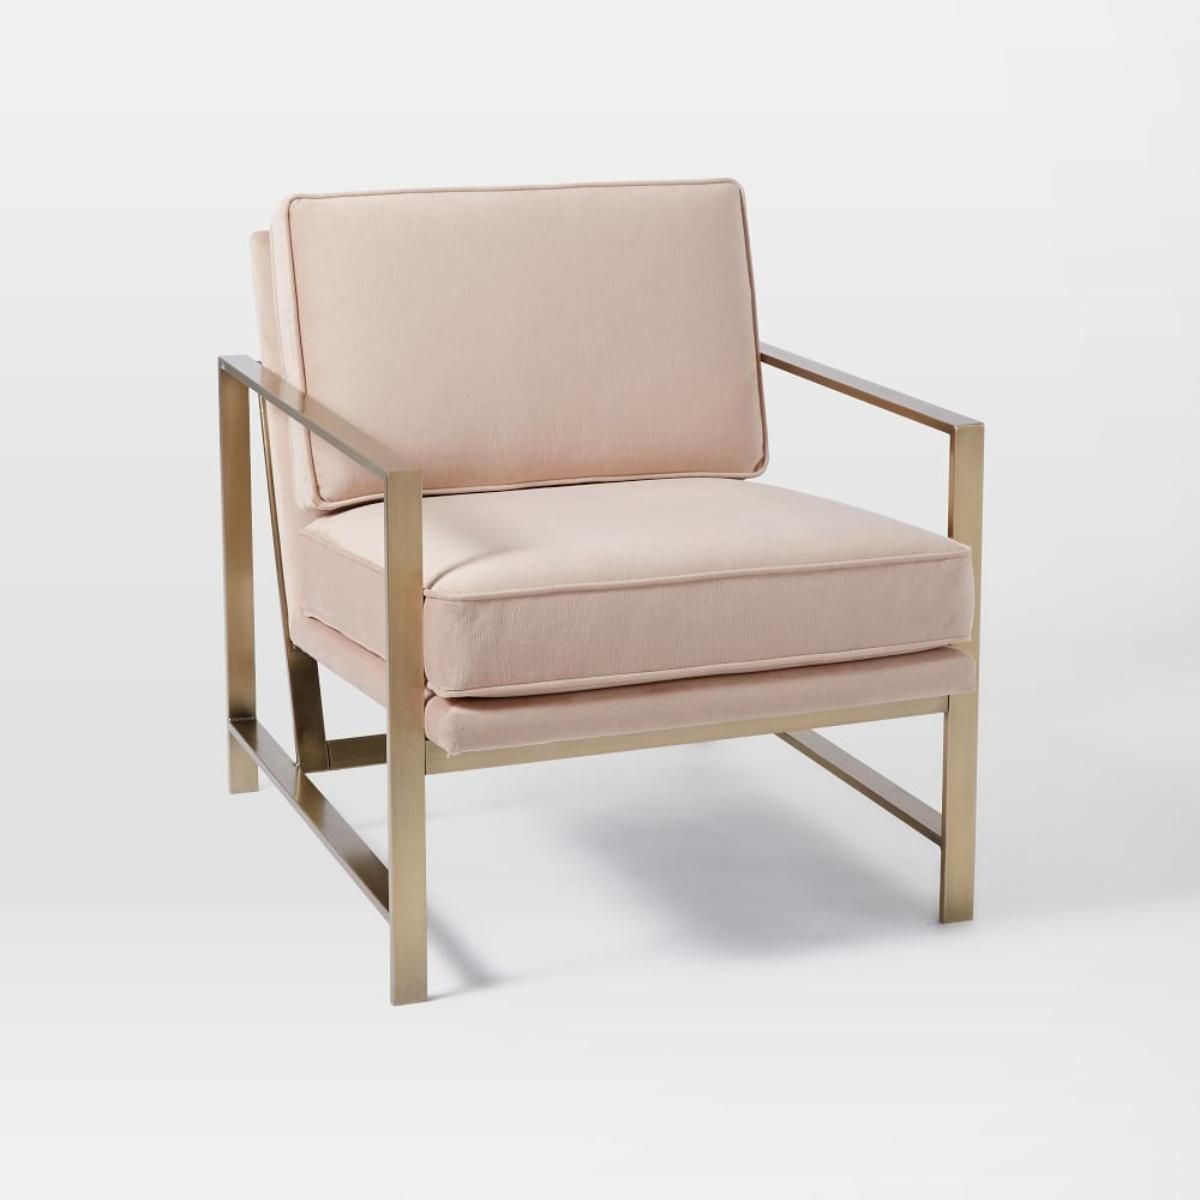 Metal Frame Upholstered Chair - Dusty Blush- west elm in australia ...